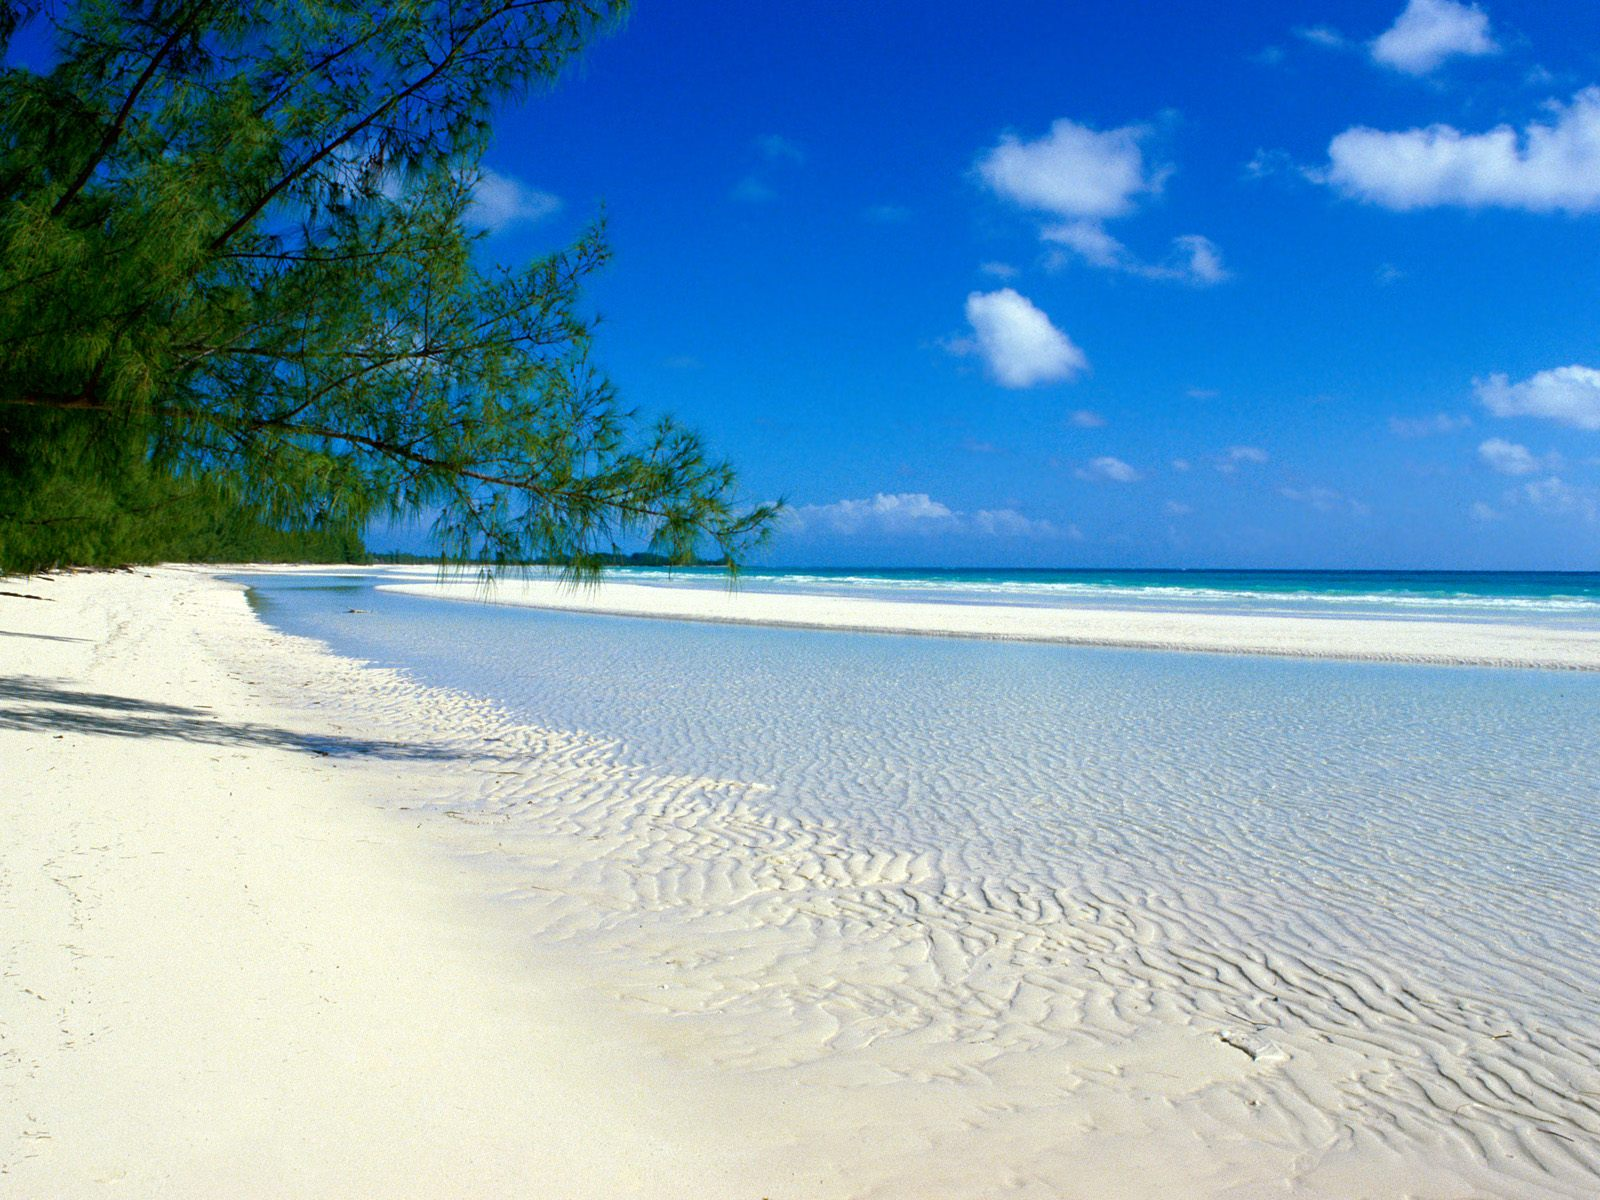 Beach Wallpaper: All In One Lovely Desktop & Mobile Wallpapers: Amazing